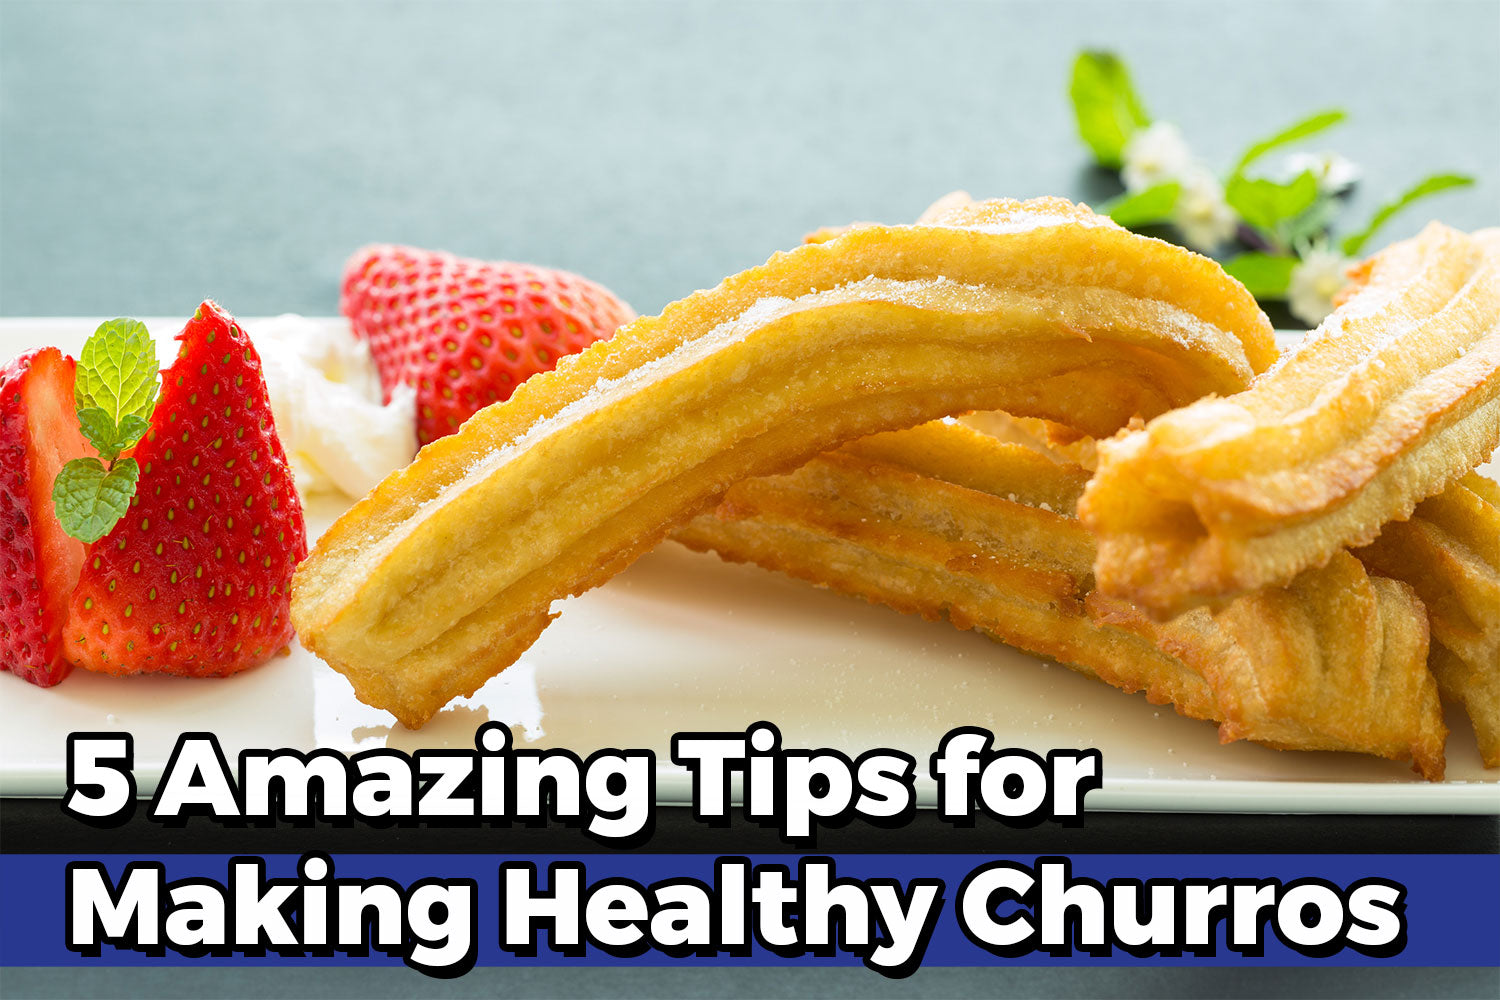 5 Amazing Tips for Making Healthy Churros